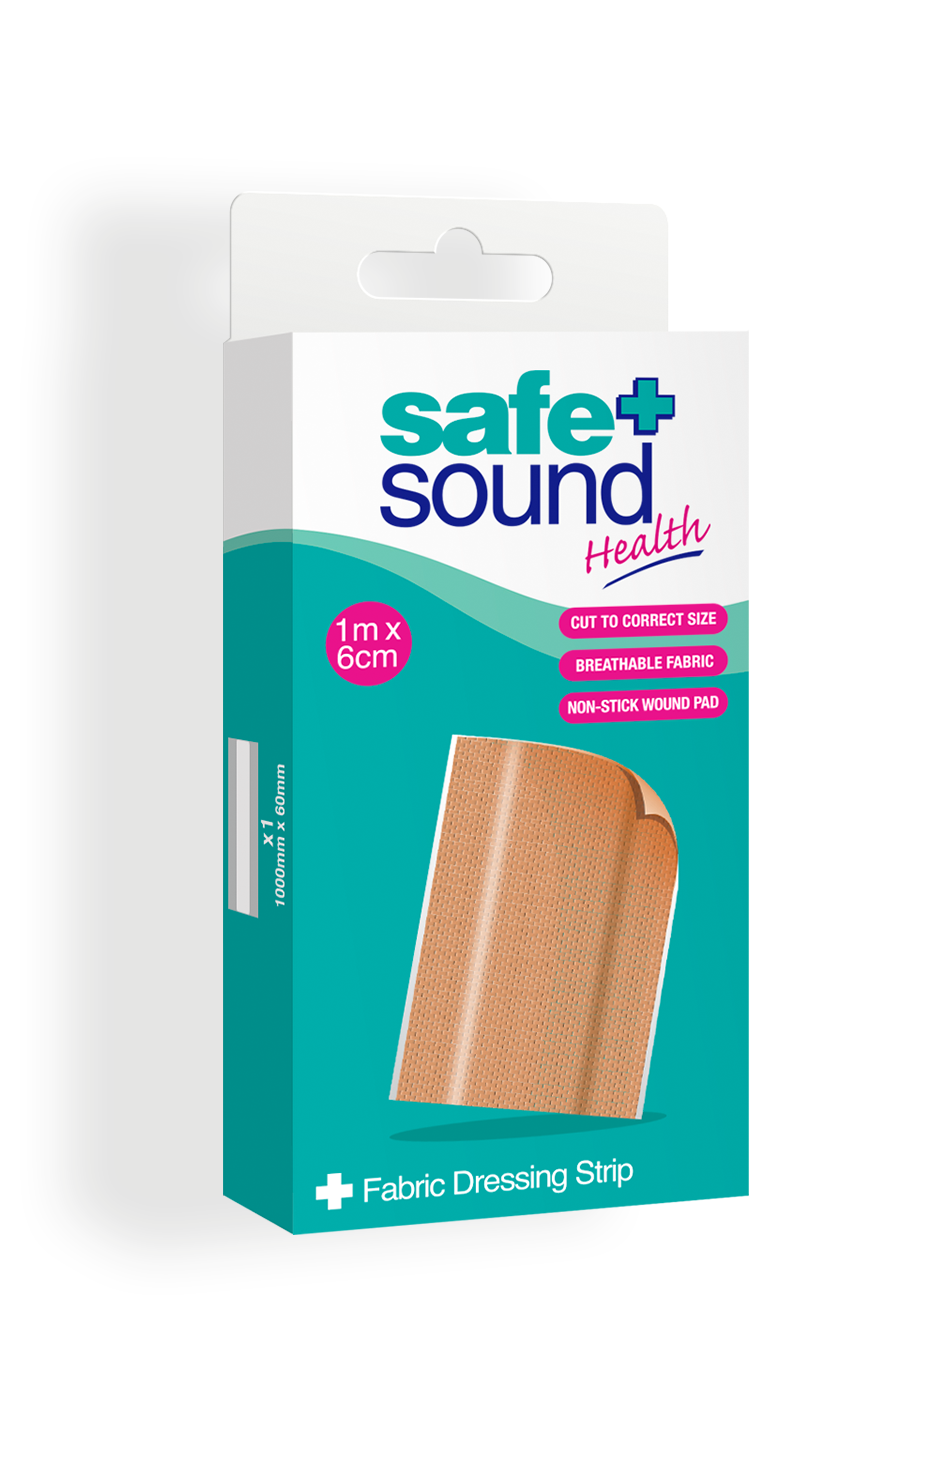 Safe and Sound Health Fabric Dressing Strip